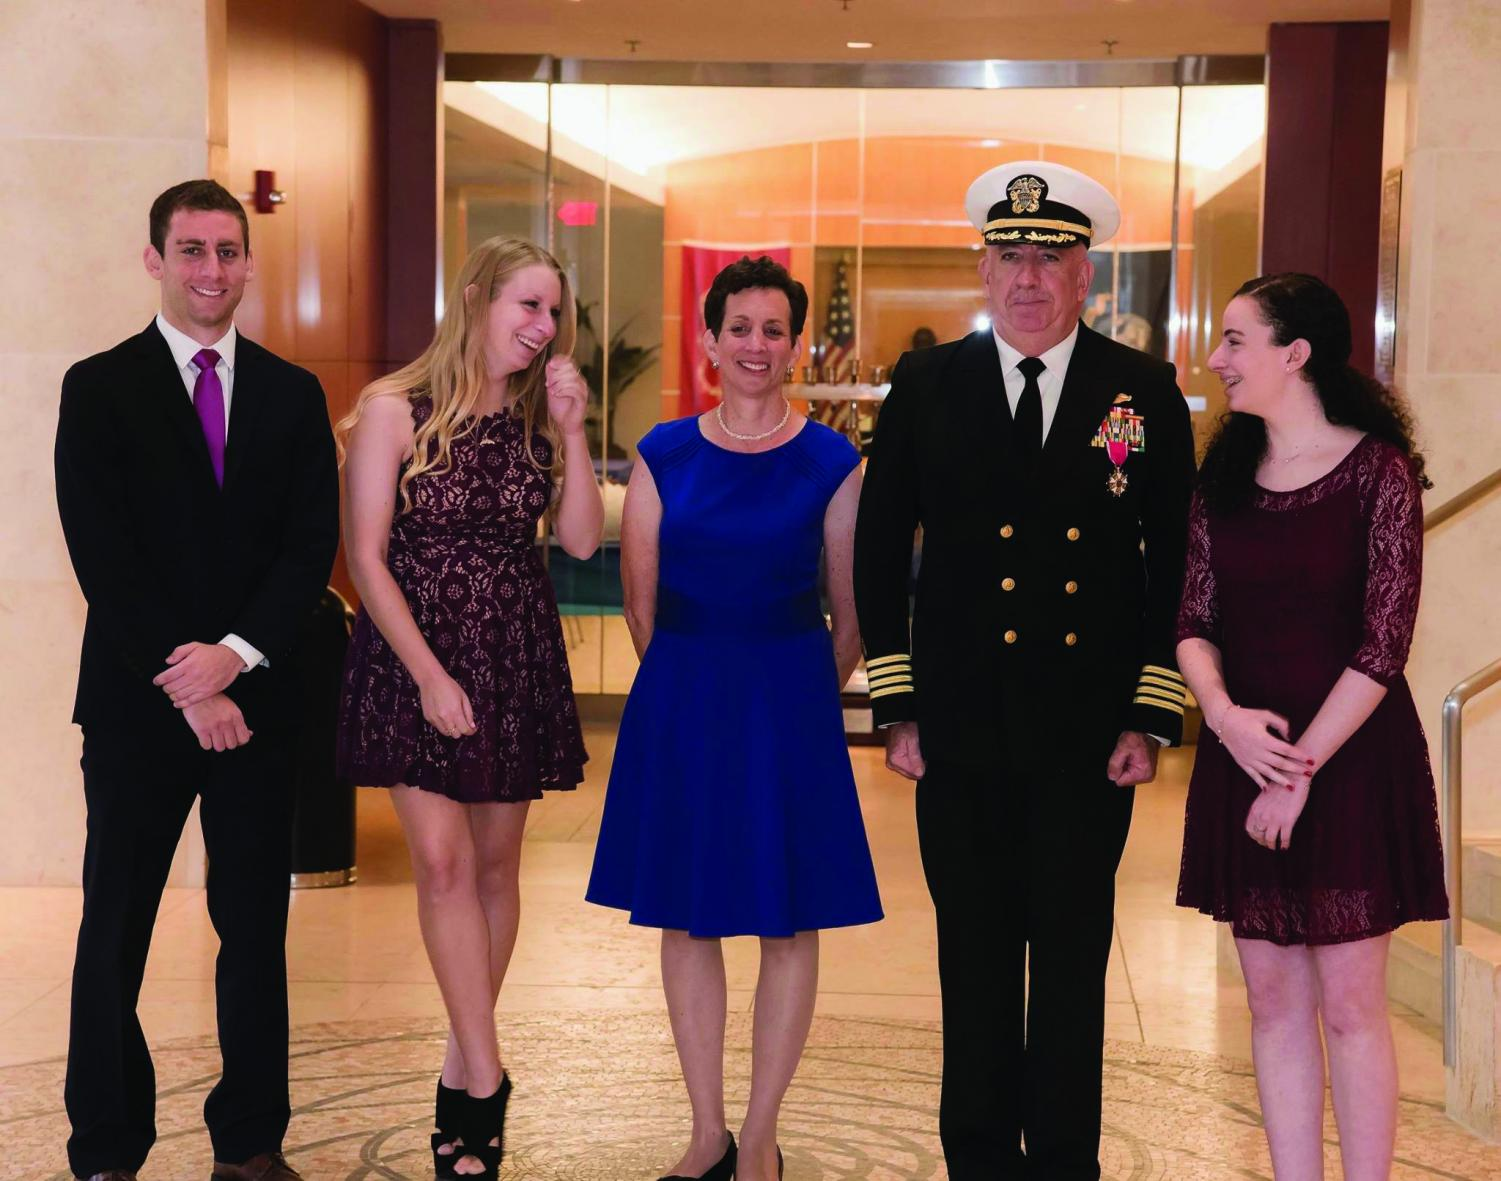 Junior Abby Elson and her family celebrate her father's retirement from the navy. They attended his retirement ceremony in October 2017.